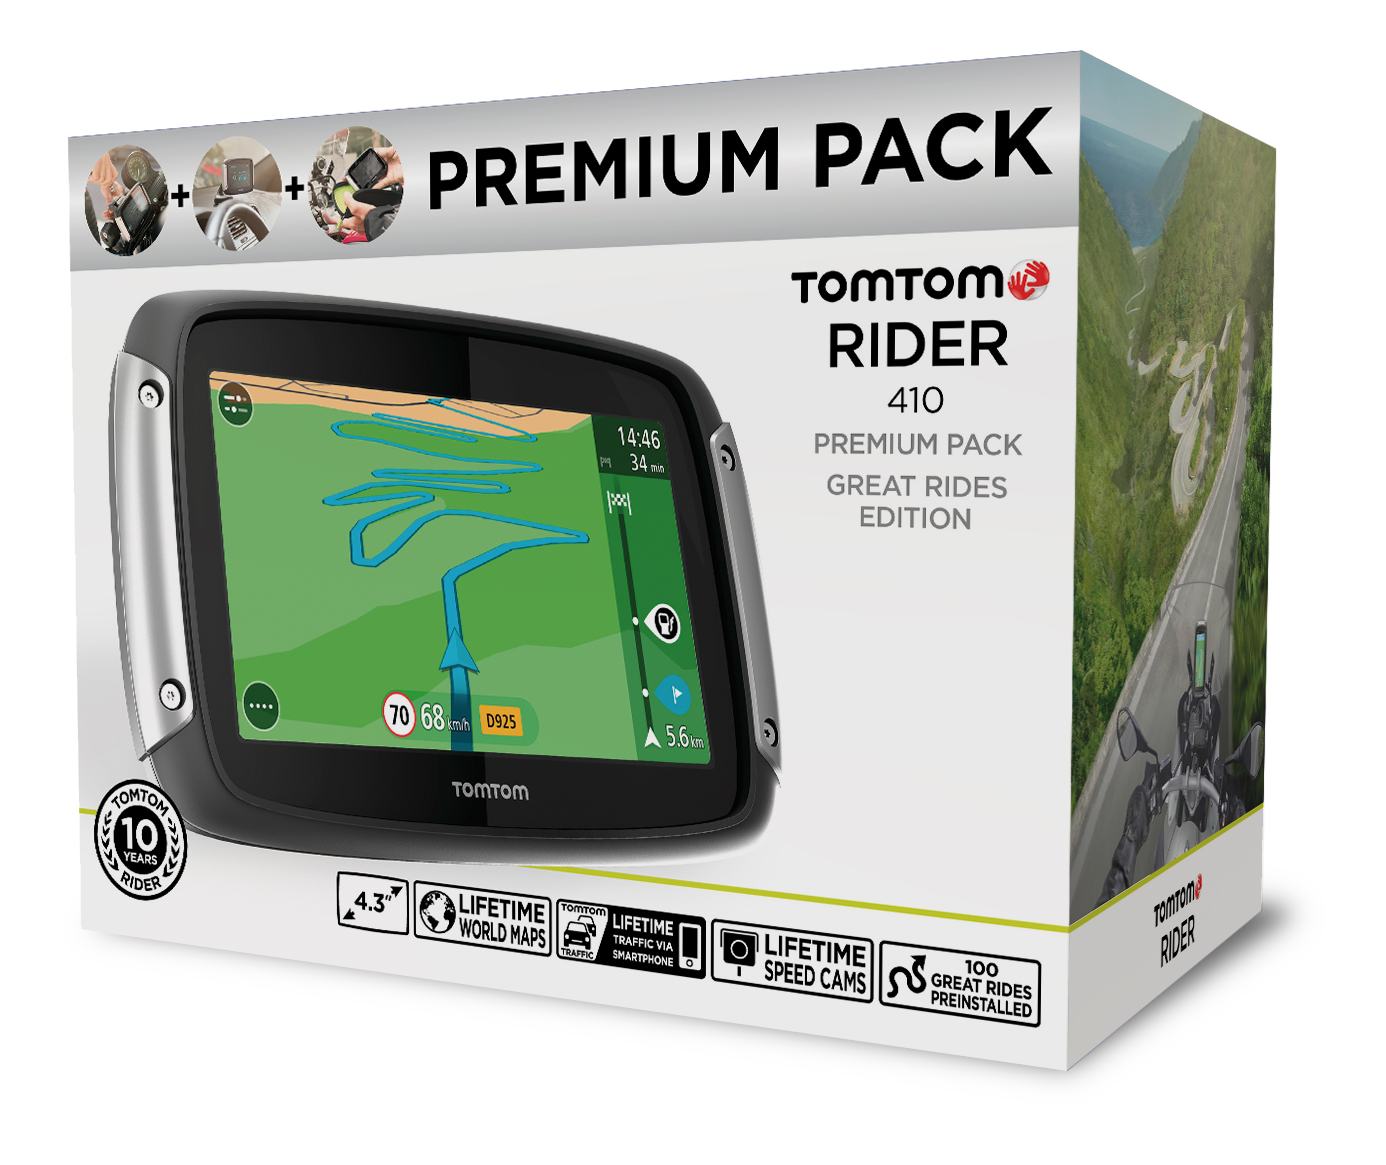 tomtom rider 410 great rides edition launched bhp bikes. Black Bedroom Furniture Sets. Home Design Ideas